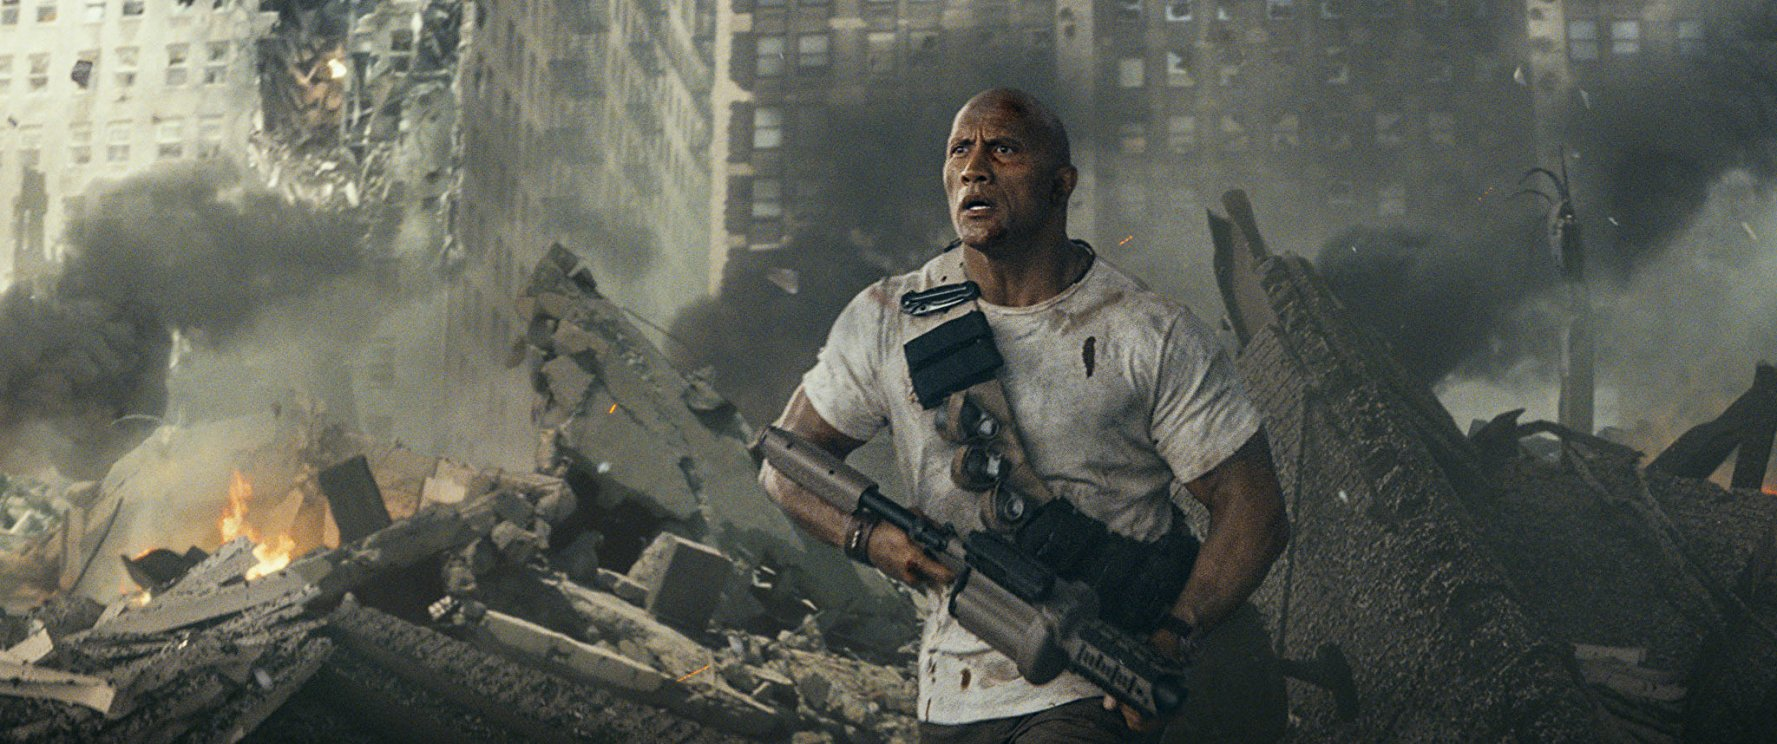 rampage, movie review, lucas mirabella